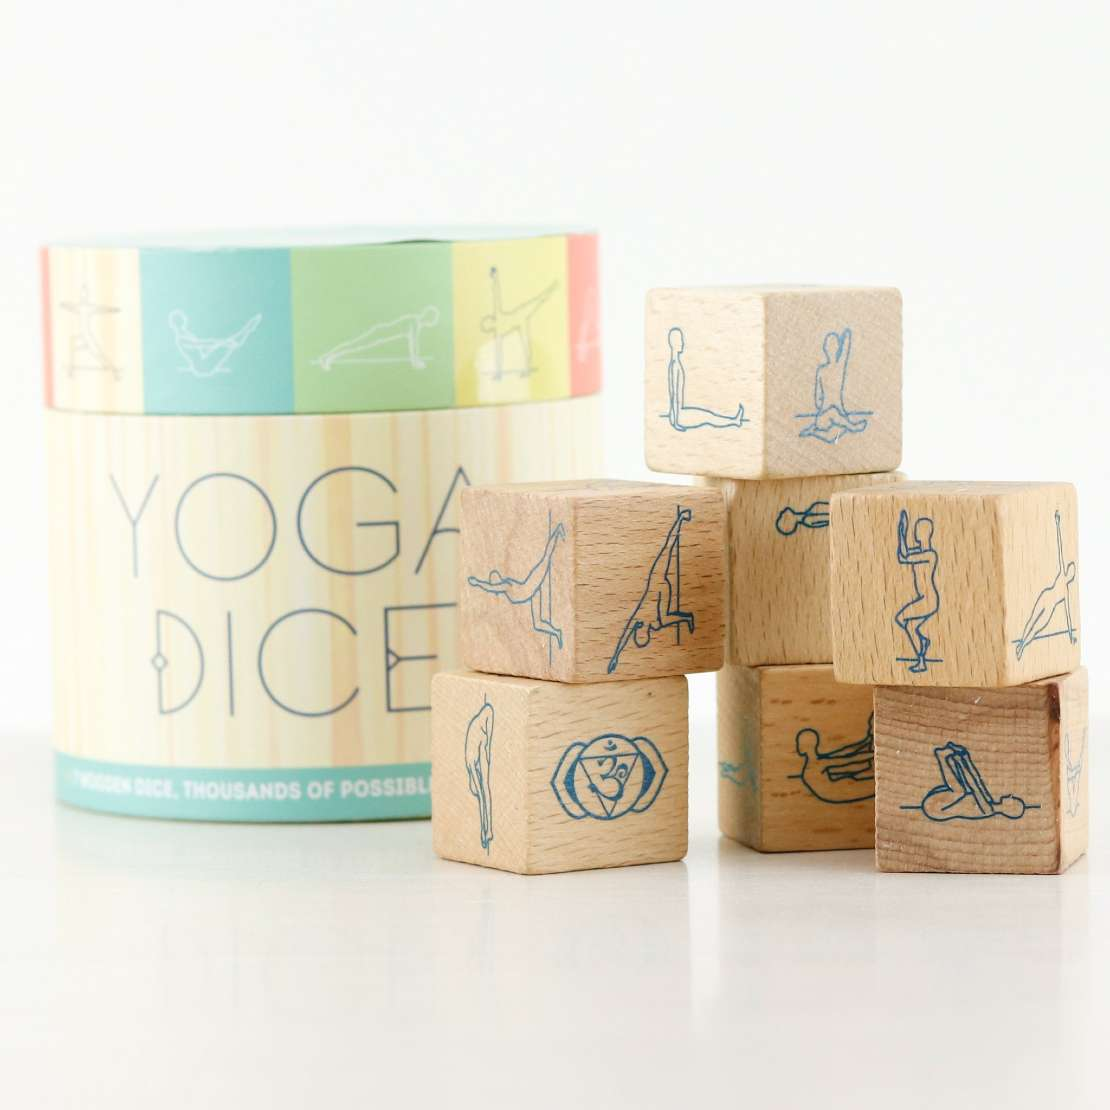 Try our Yoga dice for a wellbeing moment